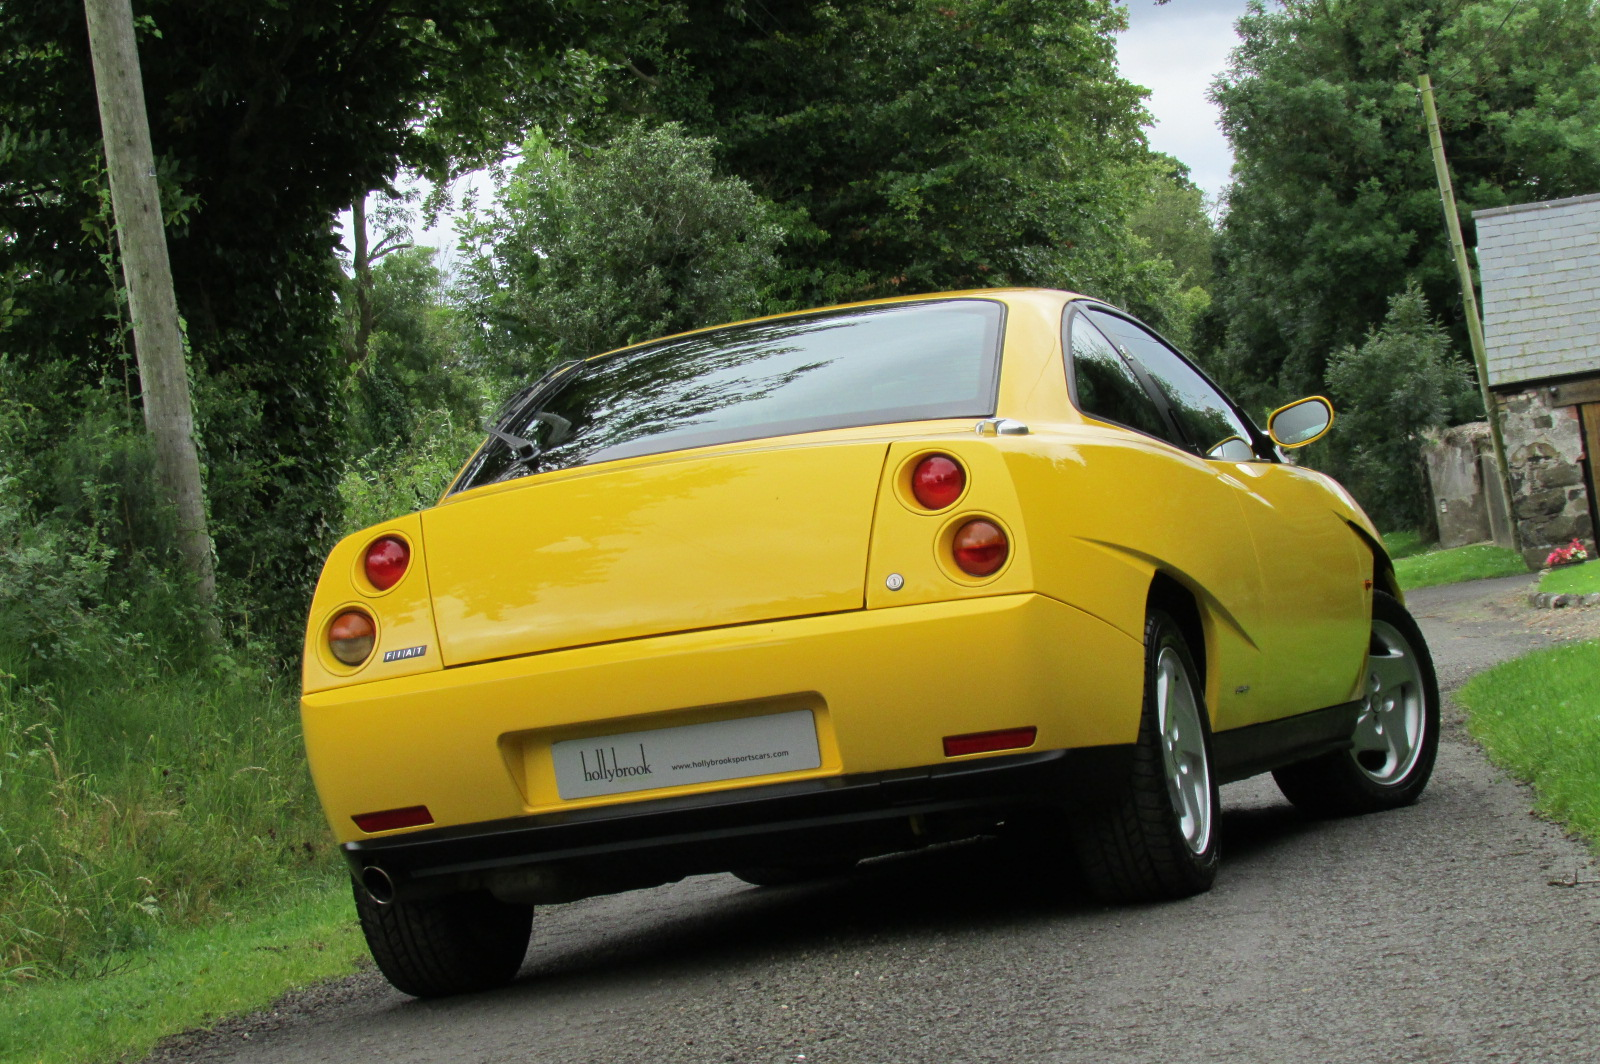 Fiat Coupe A Brand New Unregistered Fiat Coupe Just Popped Up For